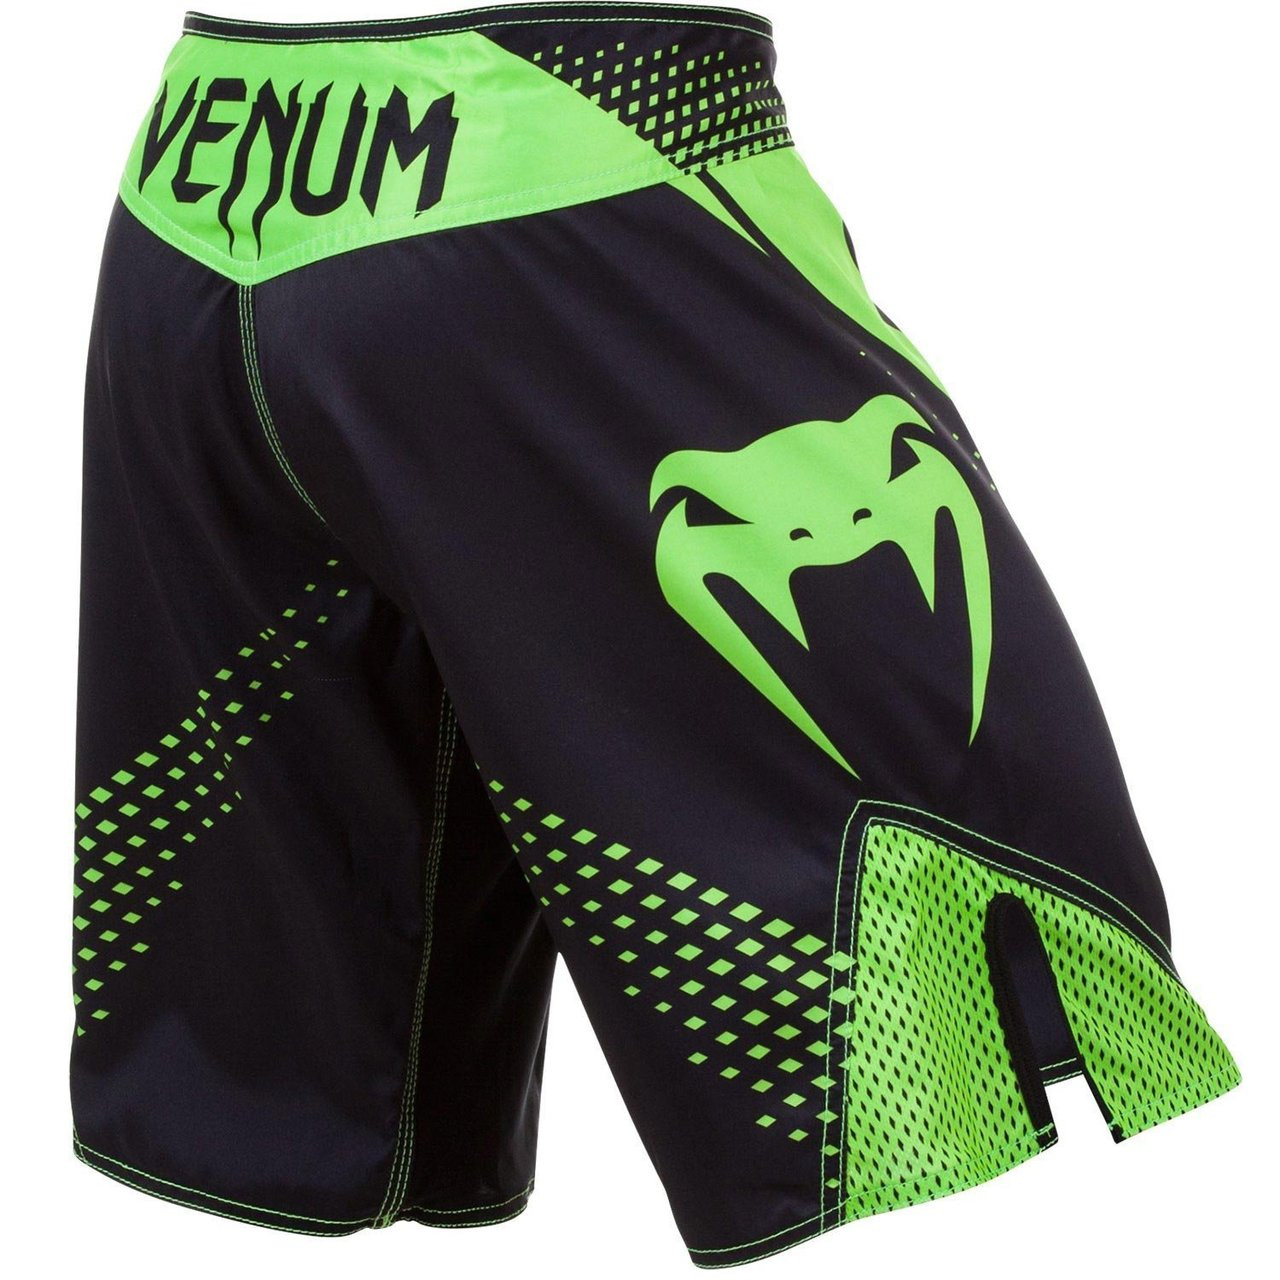 Back view of the Black and Green.  Venum Hurricane Fight Shorts now available at www.thejiujitsushop.com Bring black and green shorts to take on the world.   Enjoy Free Shipping from The Jiu Jitsu Shop today!